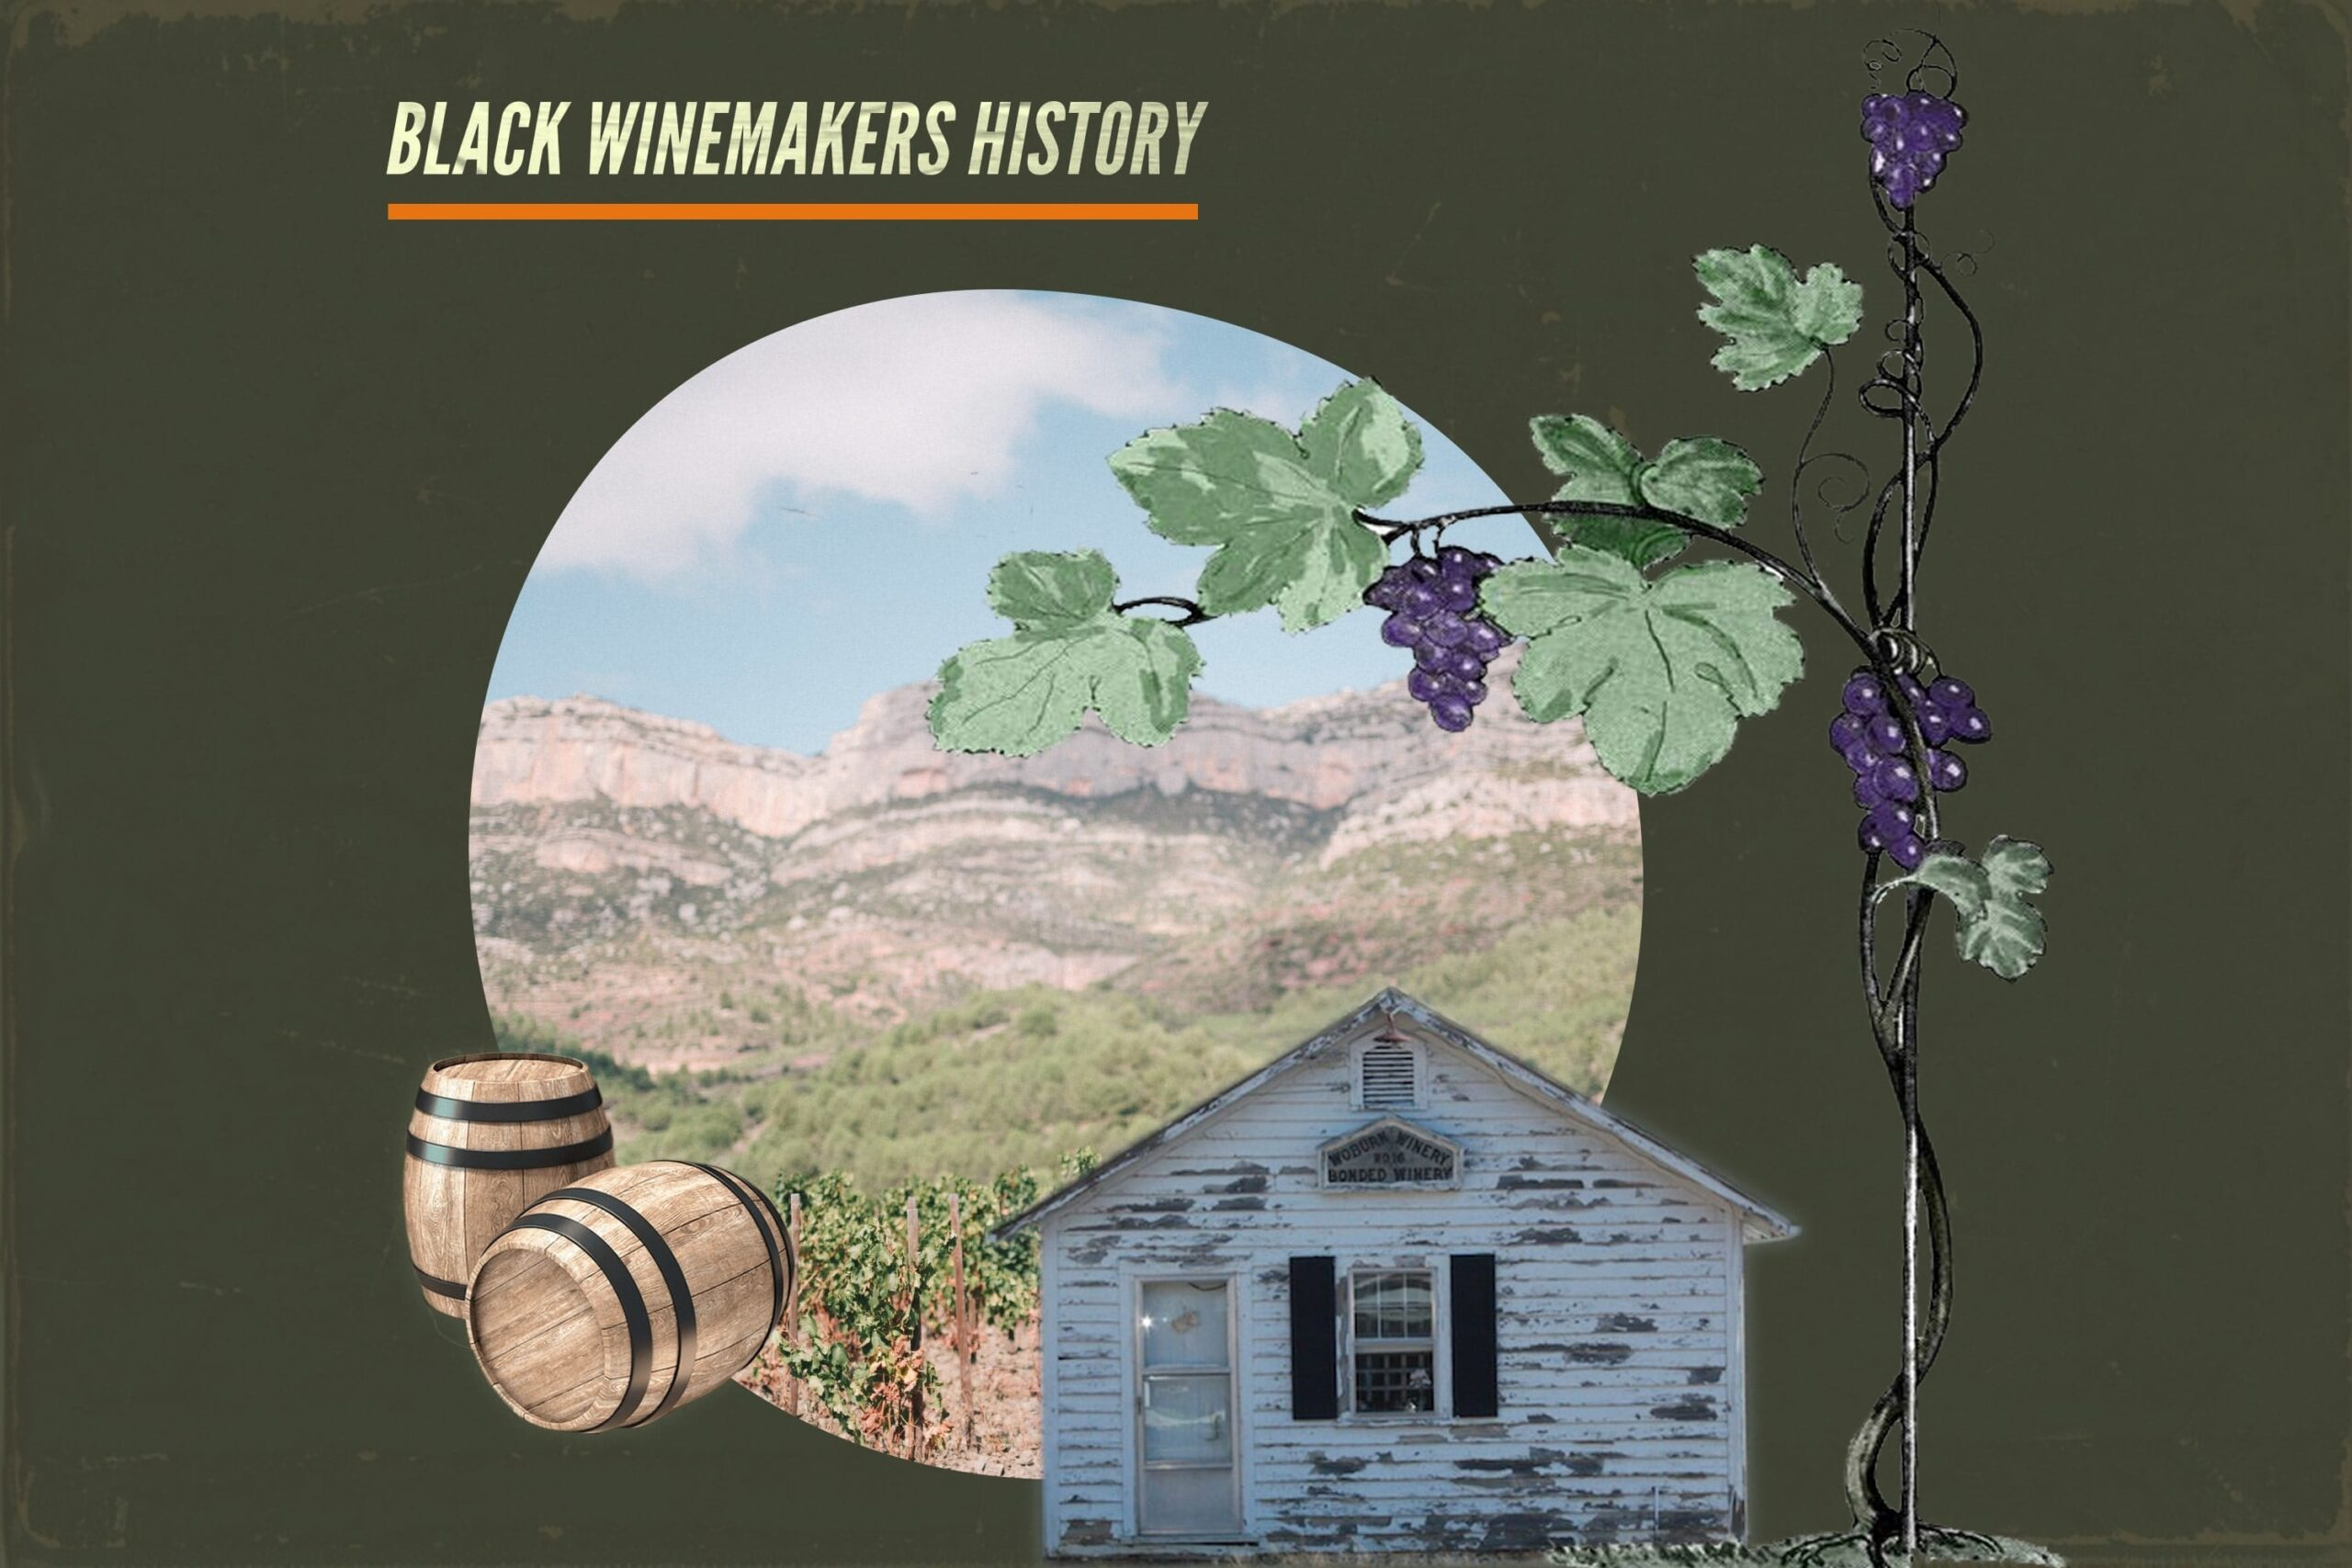 The History and Impact of Black Winemakers in the United States